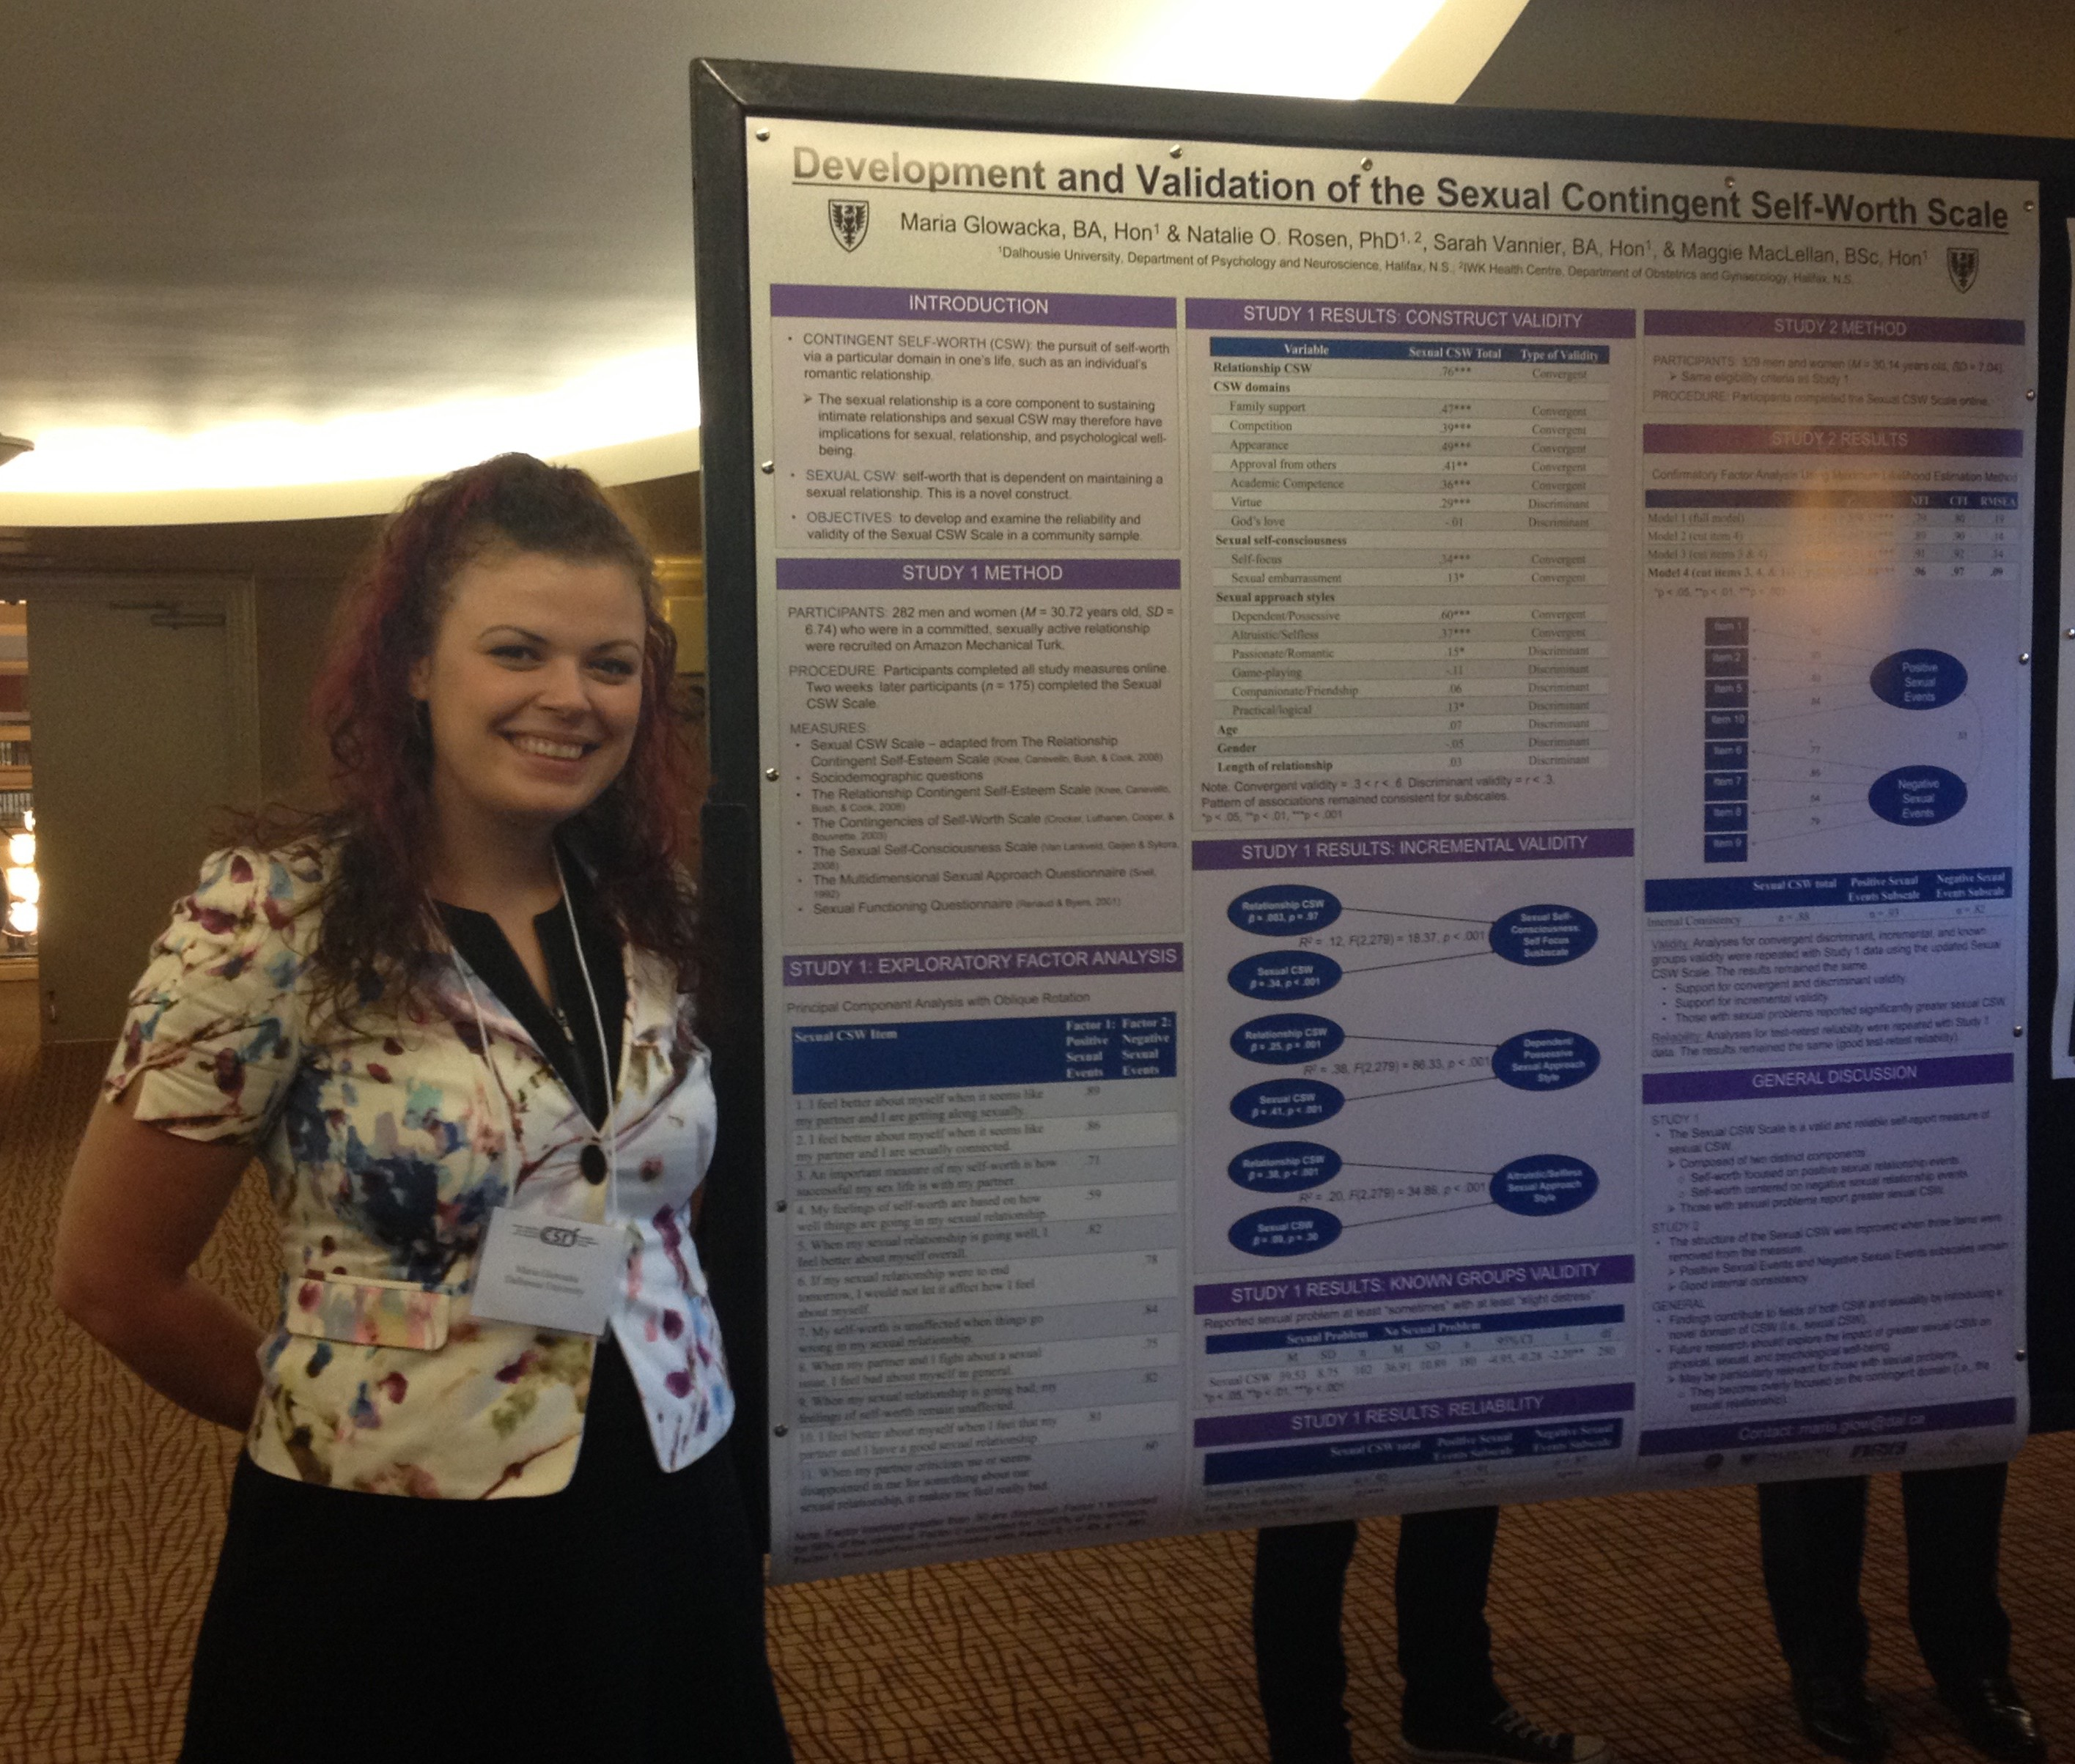 Maria Glowacka with the Poster She Presented at CSRF's Annual Meeting 2015